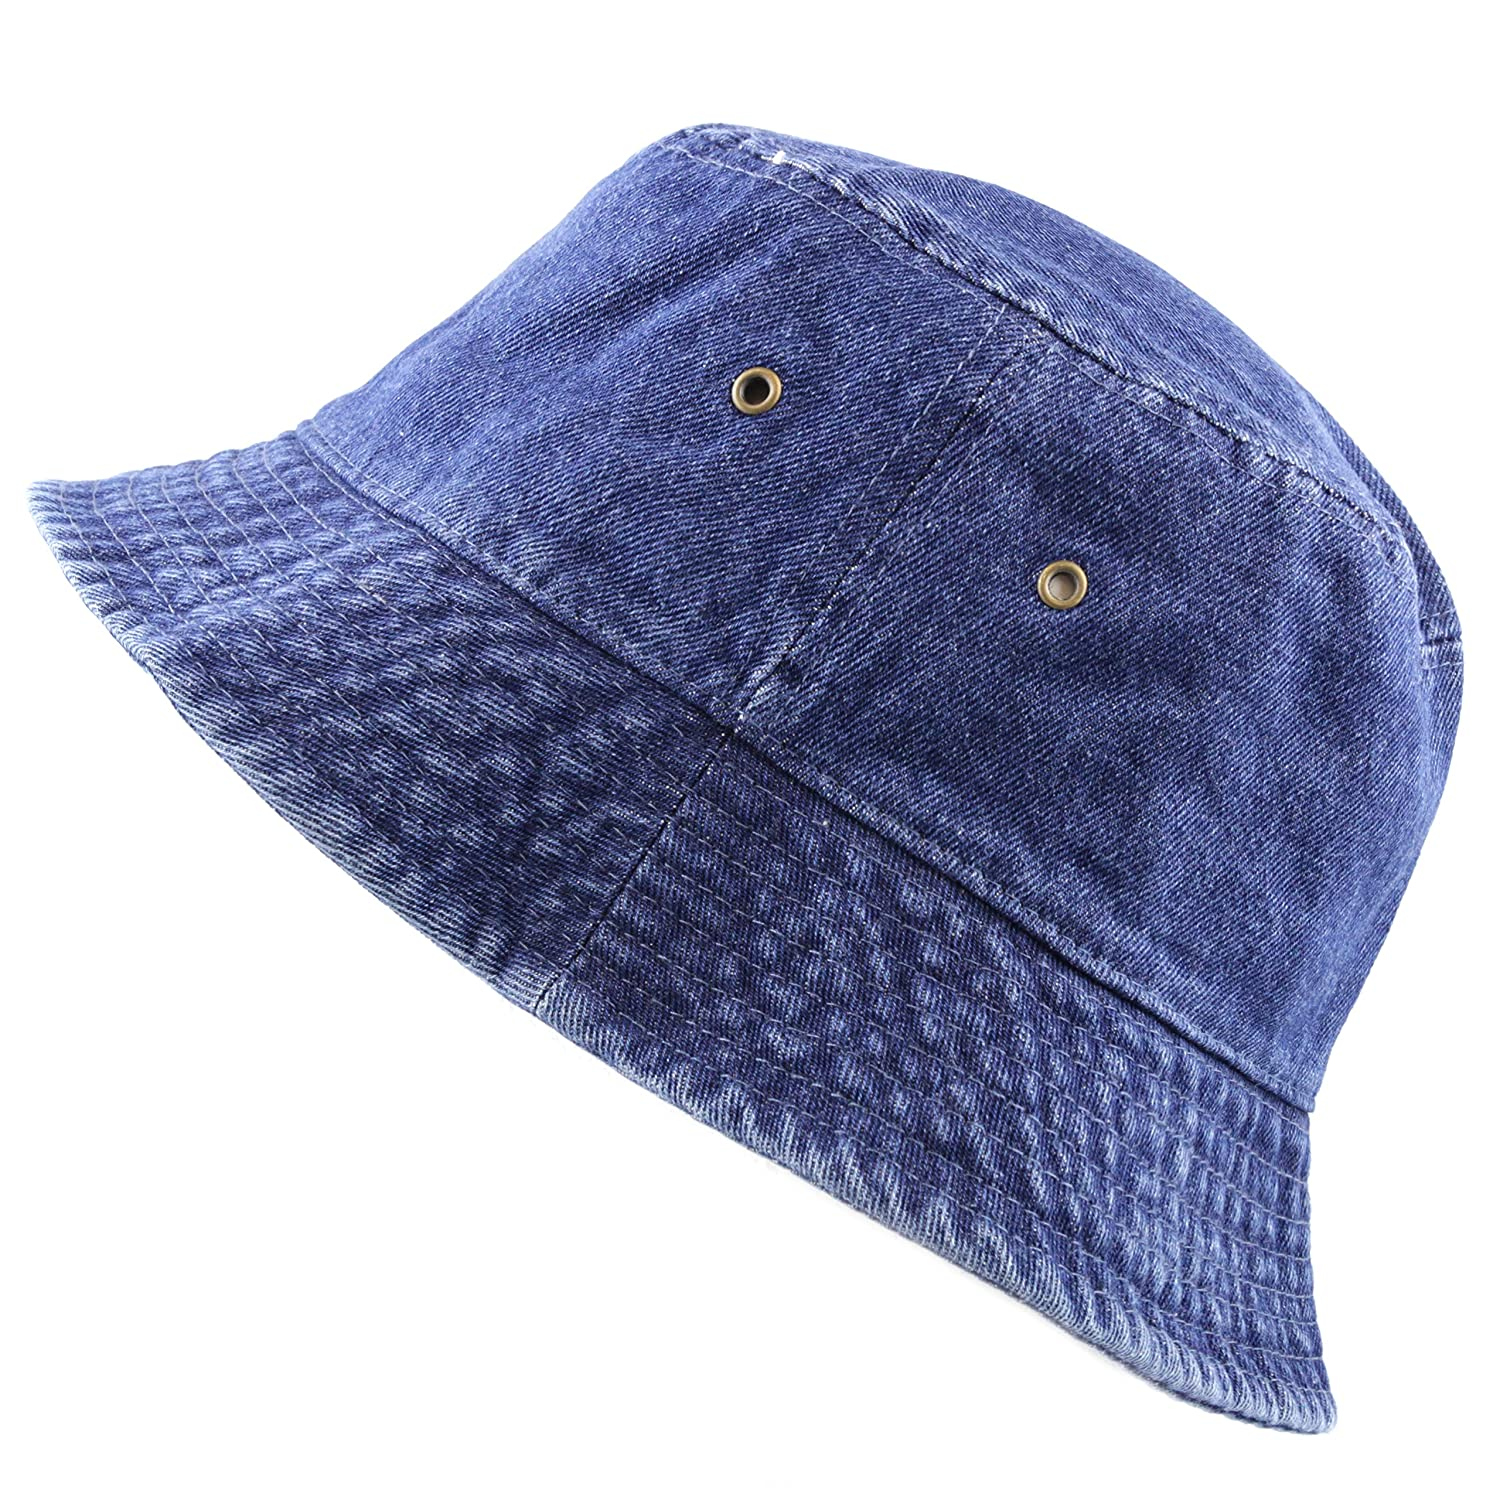 3e7504490b216 THE HAT DEPOT Washed Cotton Denim Bucket Hat at Amazon Women s Clothing  store